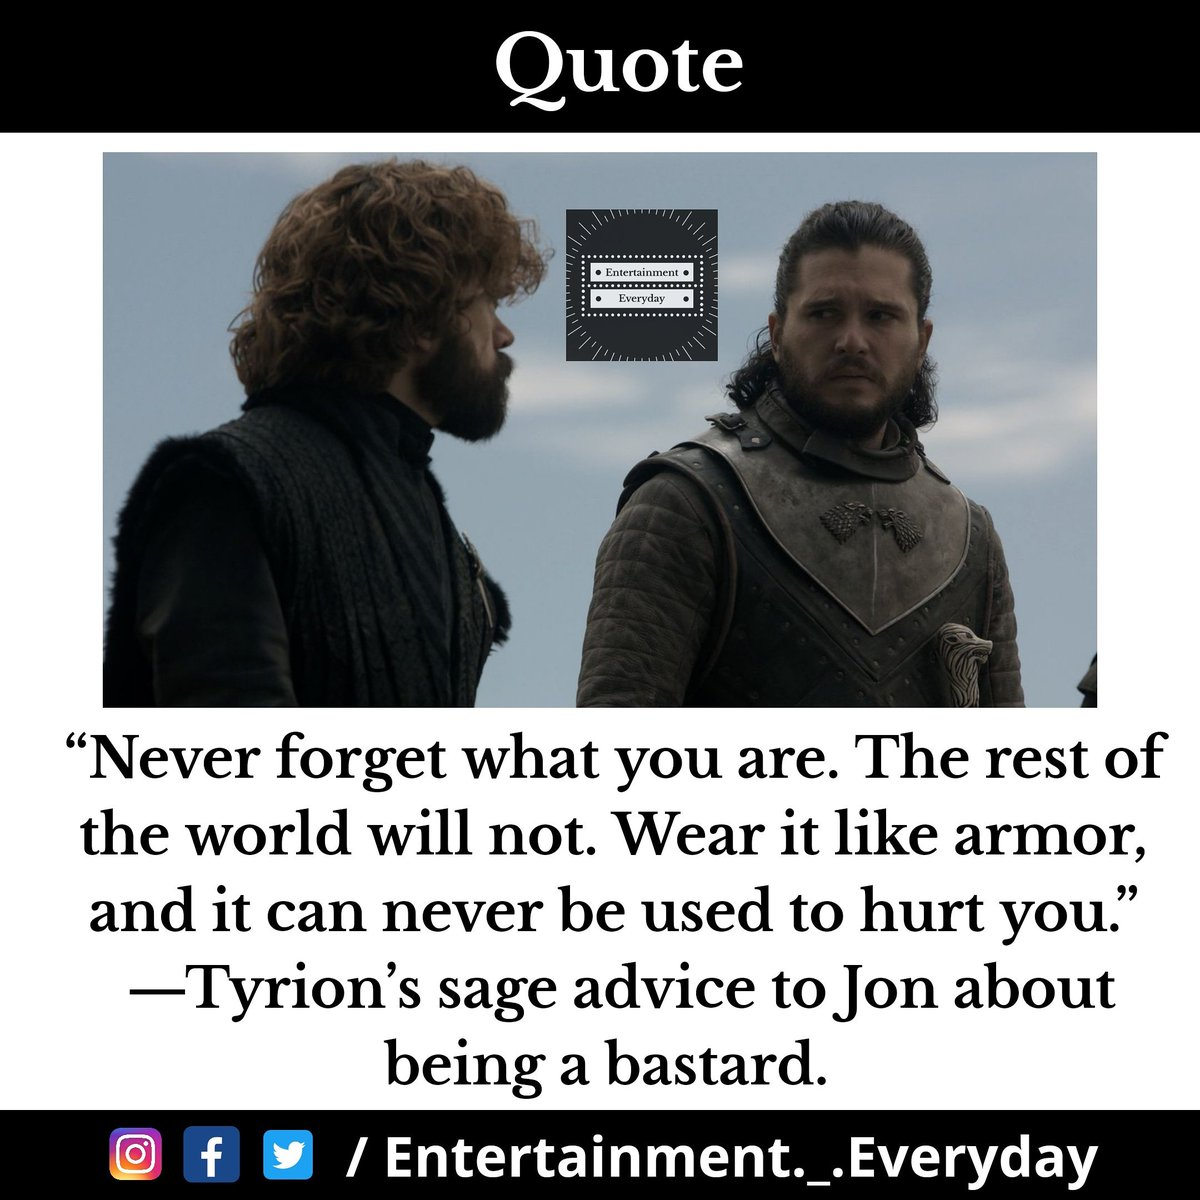 Tag #GameofThrones fans and share it with your friends. Follow our page for more posts like this. #entertainment #entertainment_everyday #GameOfThronesSeason9 #EmiliaClarke #JonSnow #SophieTurner #DaenerysTargaryen #forthethrone #cerseilannister #jaimelannister #winterfell #HBO https://t.co/DYlPc5dR9L